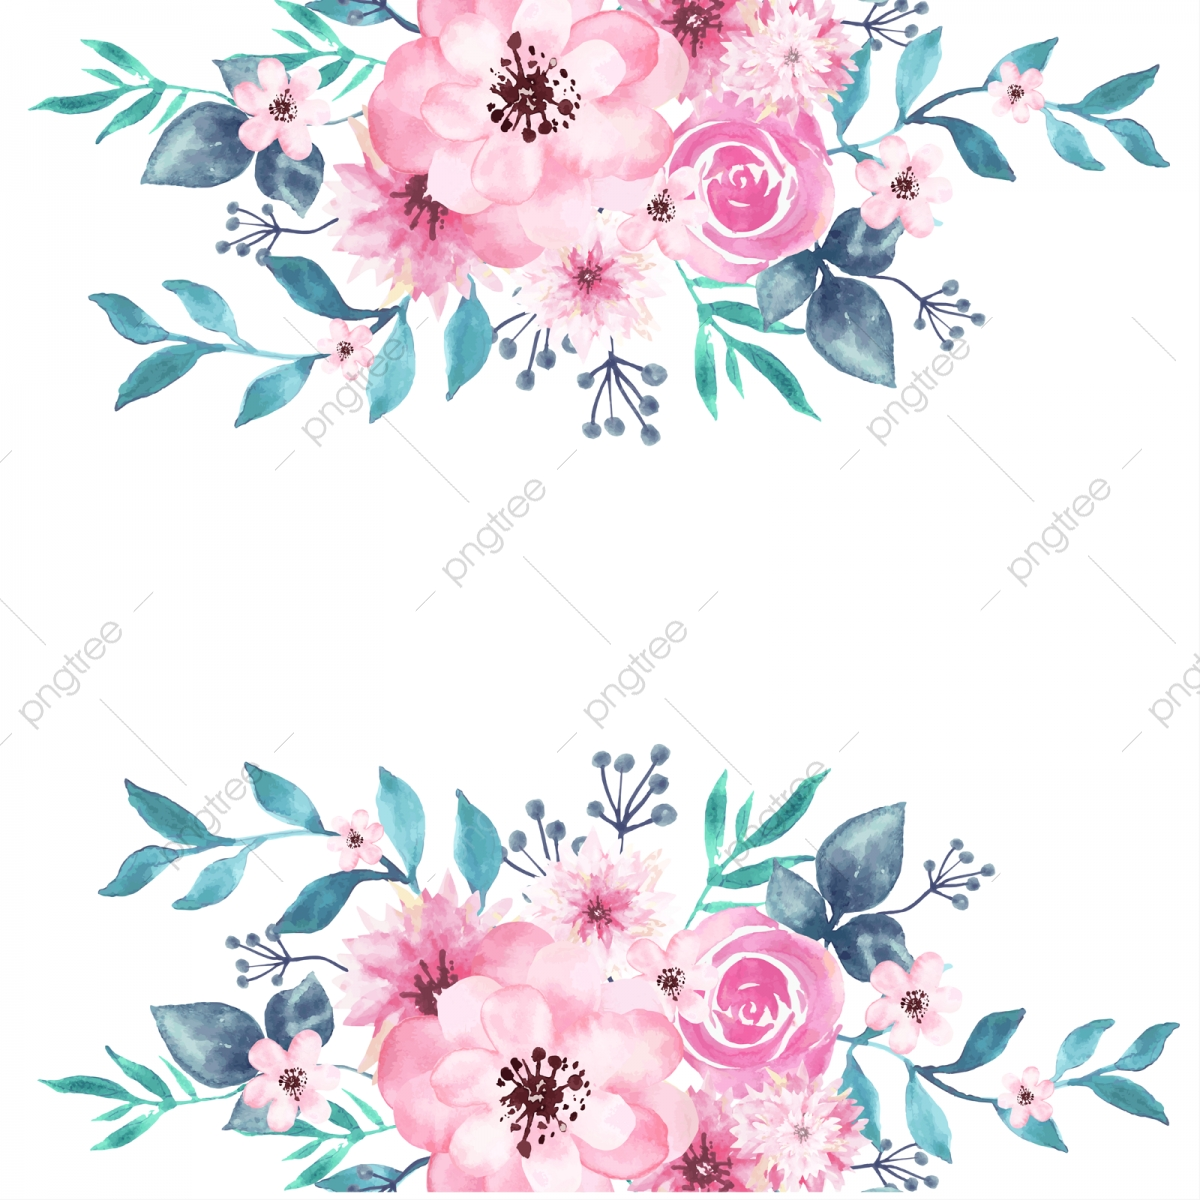 watercolor floral background  peony  spring  transparent png and vector with transparent